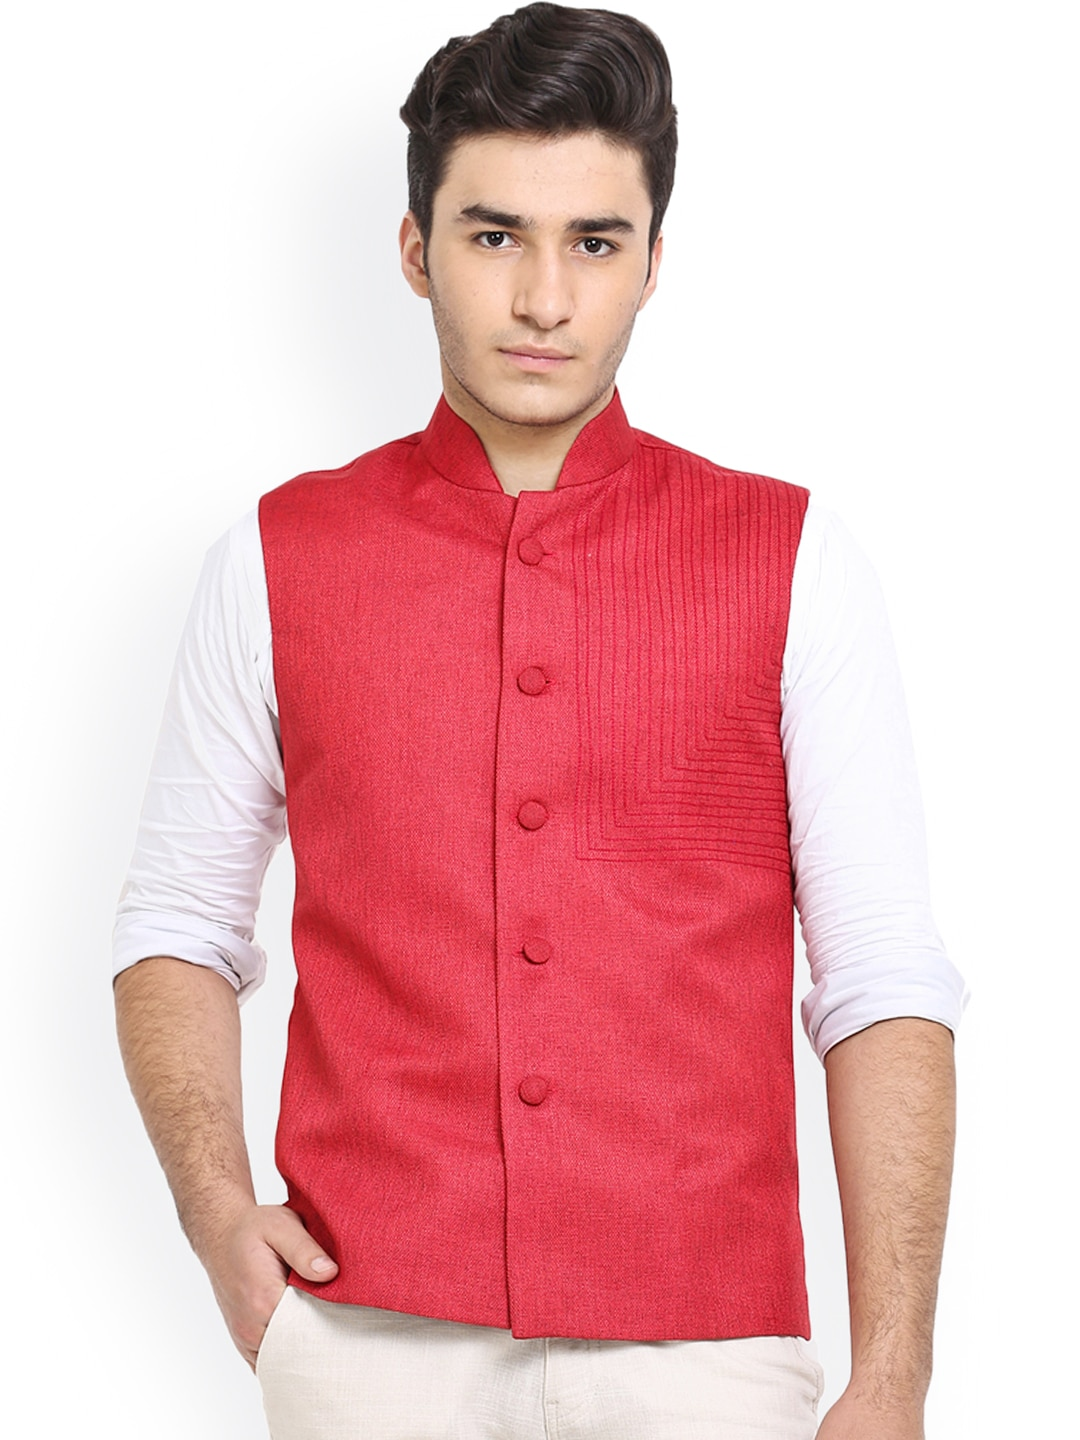 Shaftesbury London Red Jute Nehru Jacket